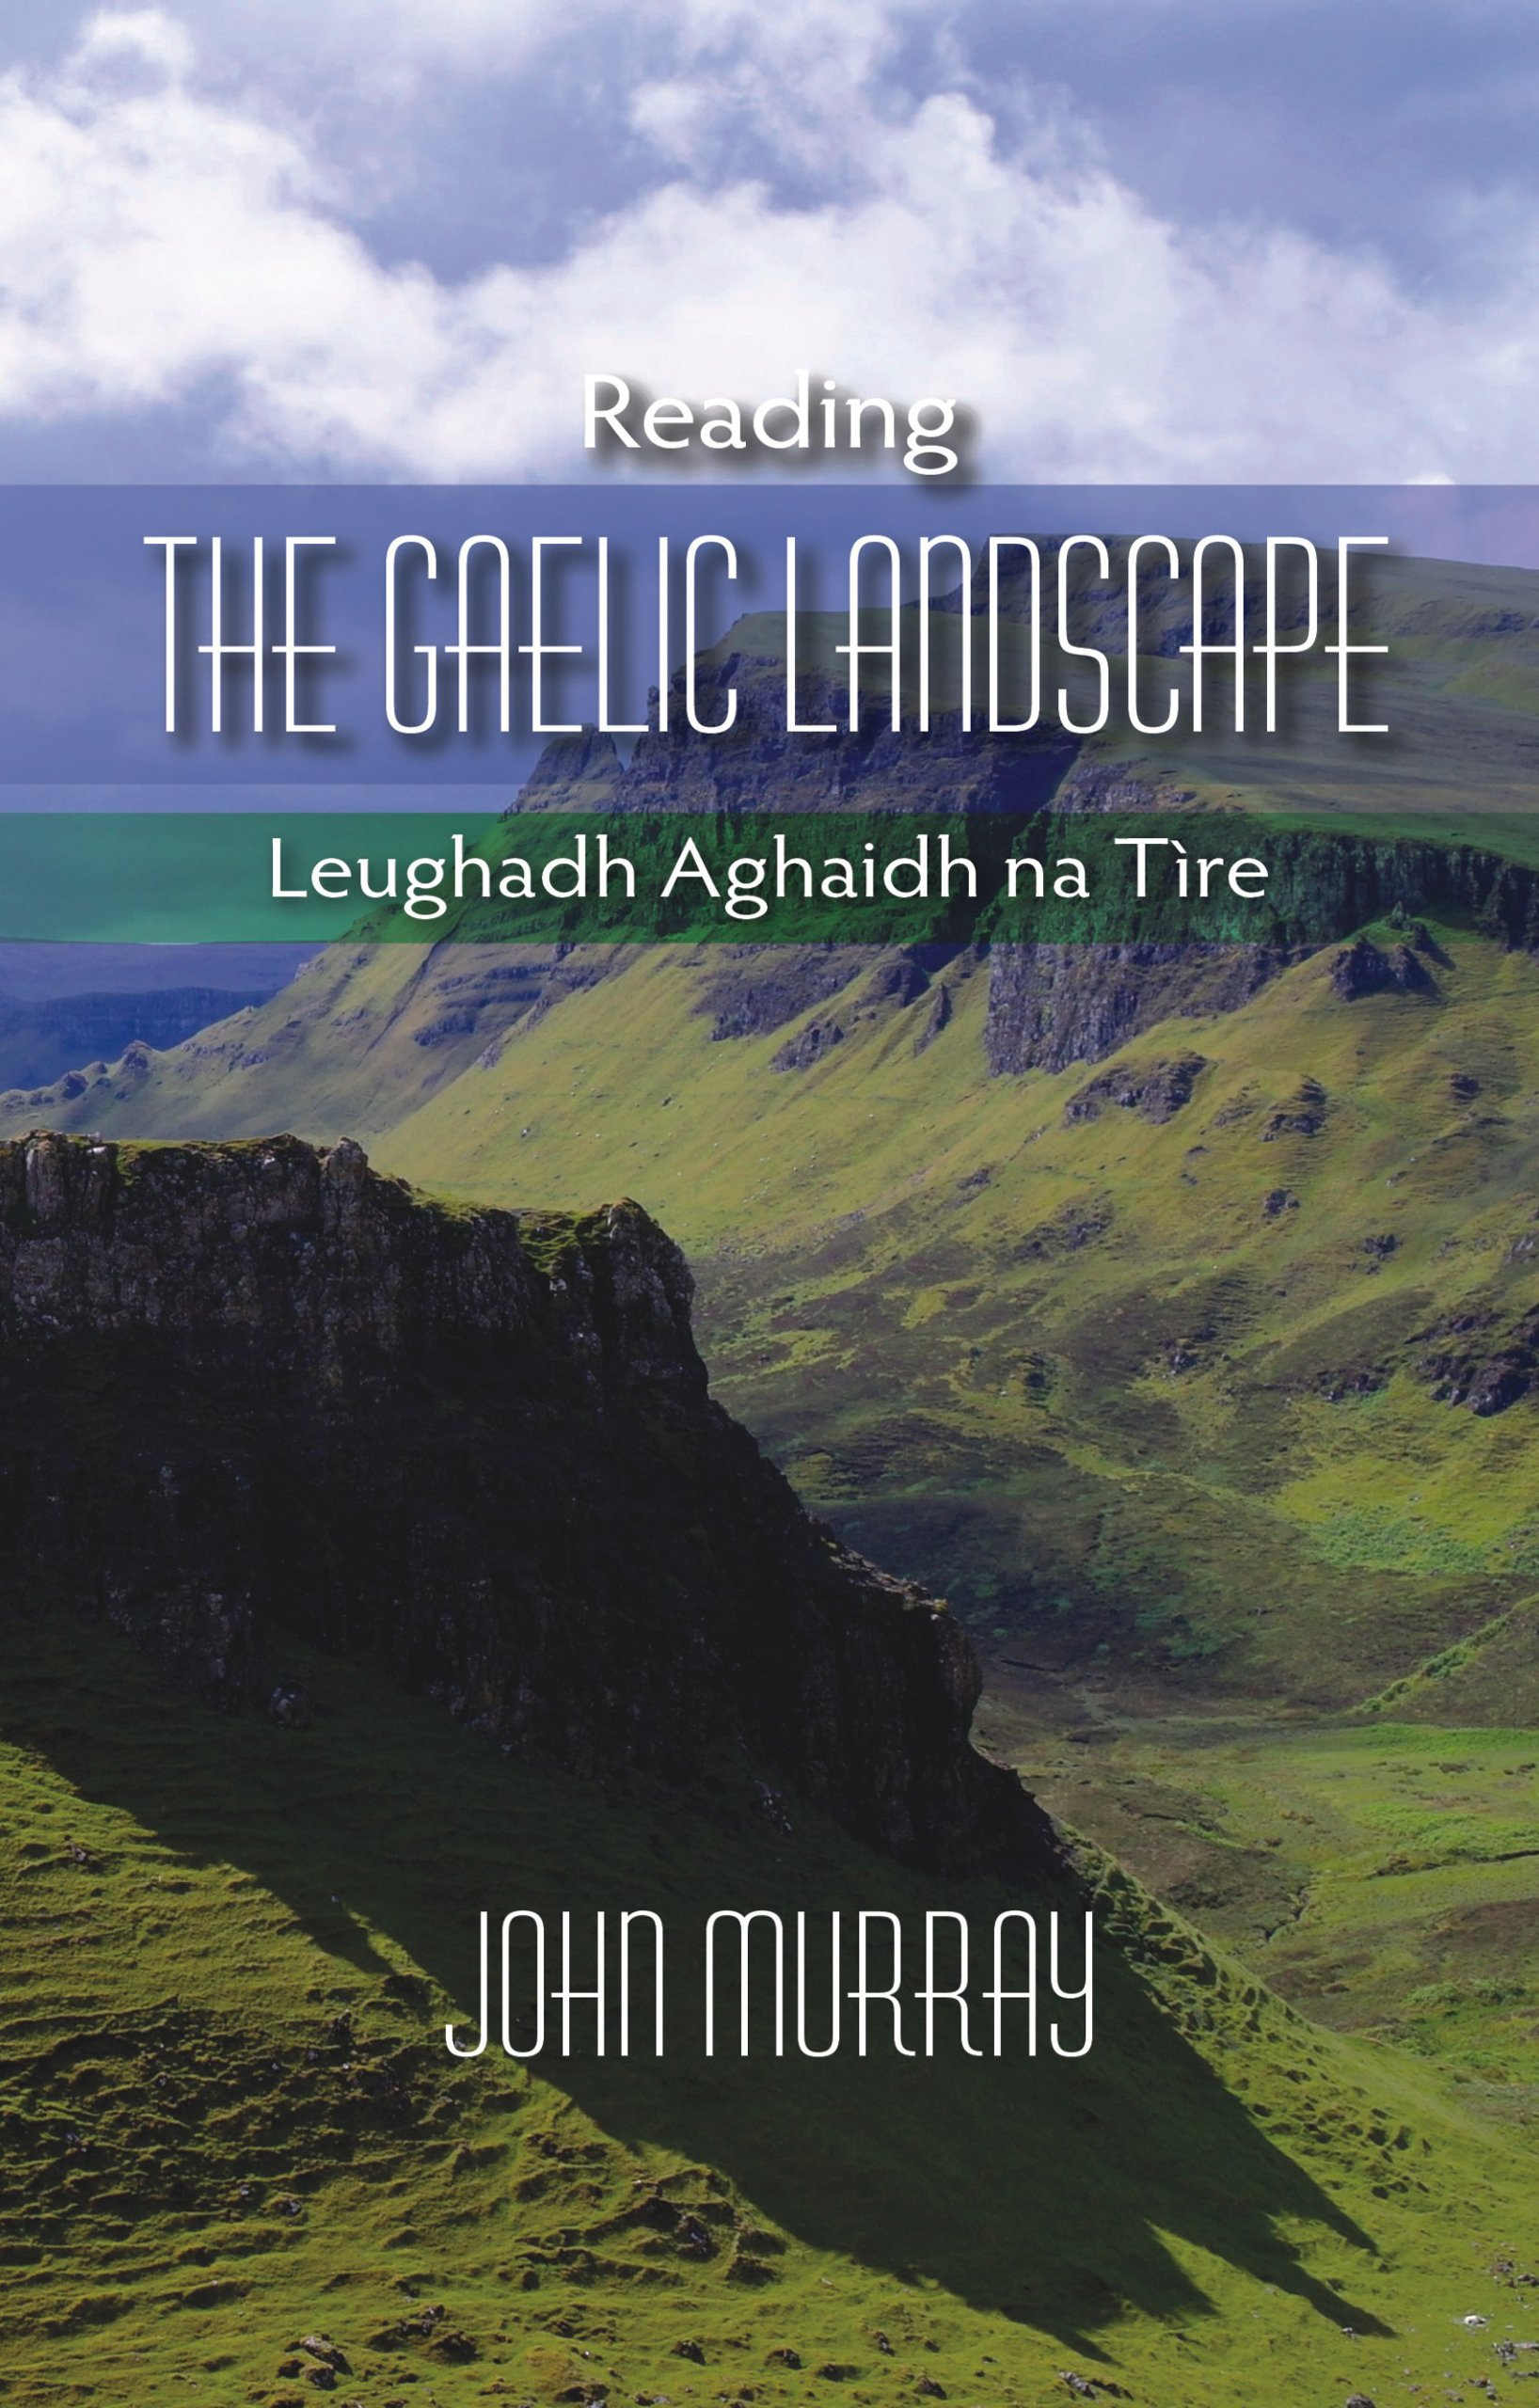 How to read and write gaelic - Reading The Gaelic Landscape Leughadh Aghaidh Na Tire Amazon Co Uk John Murray 9781849951005 Books